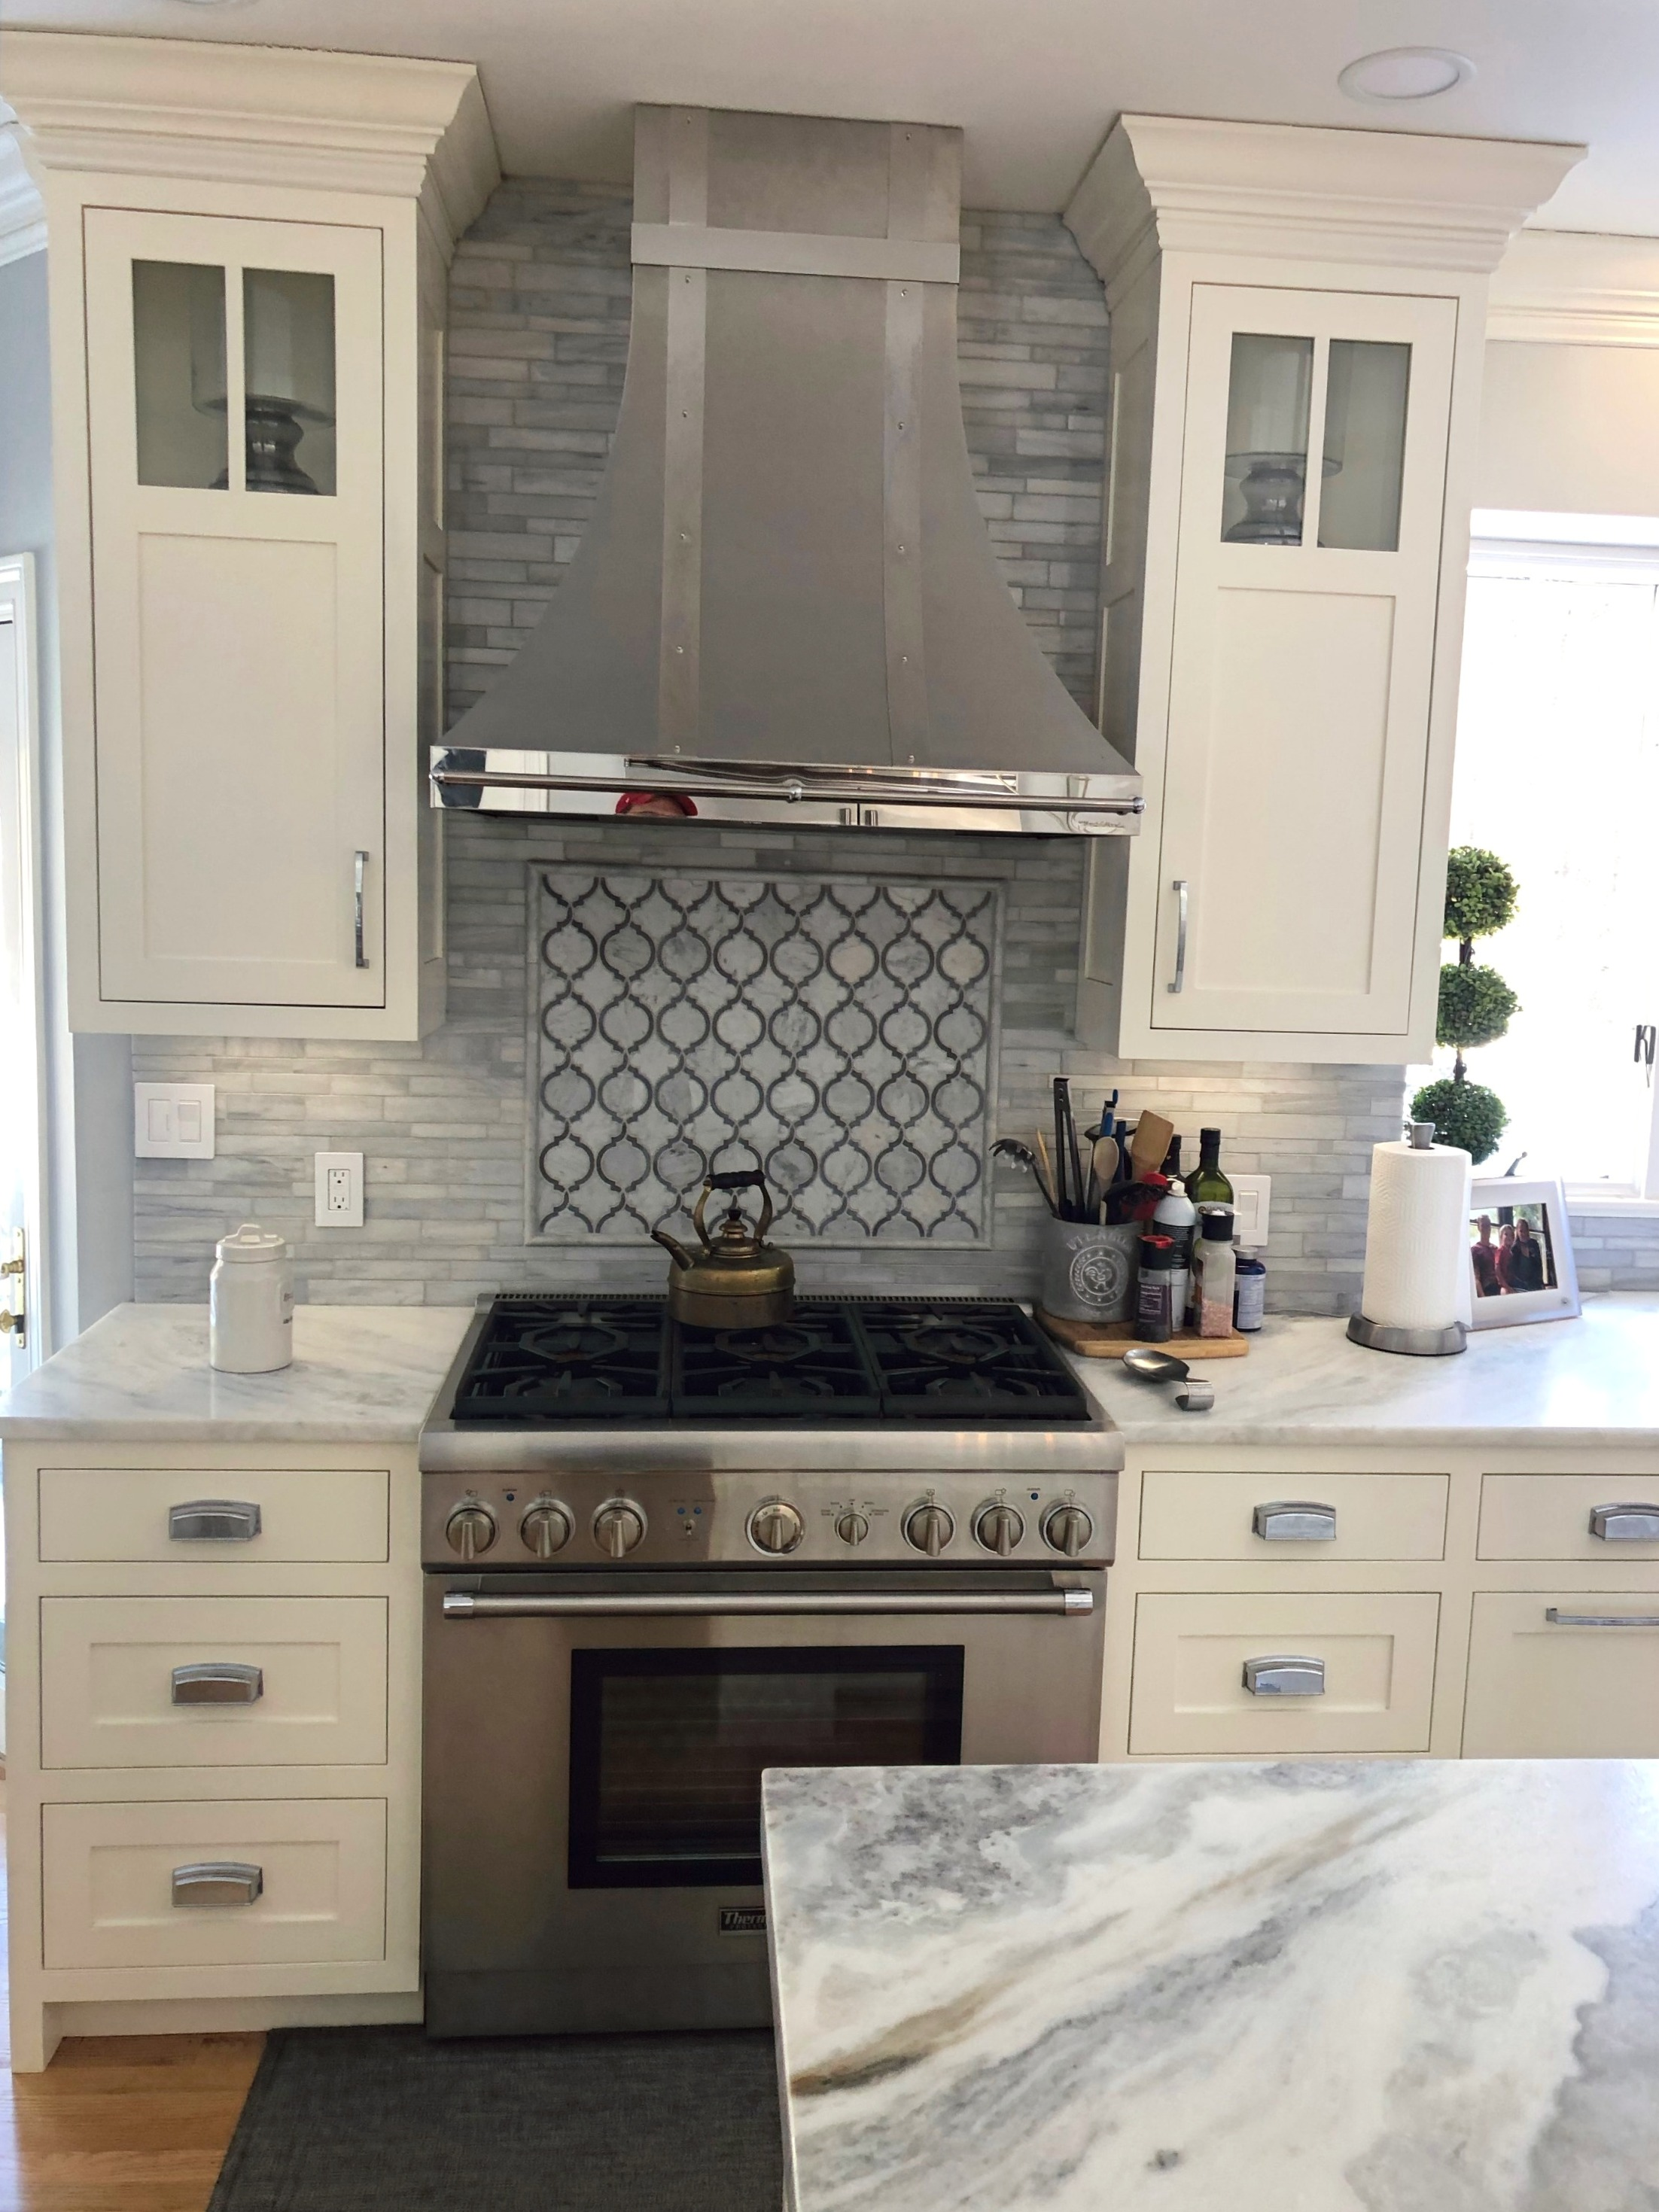 Unique Kitchen Backsplash and Hood